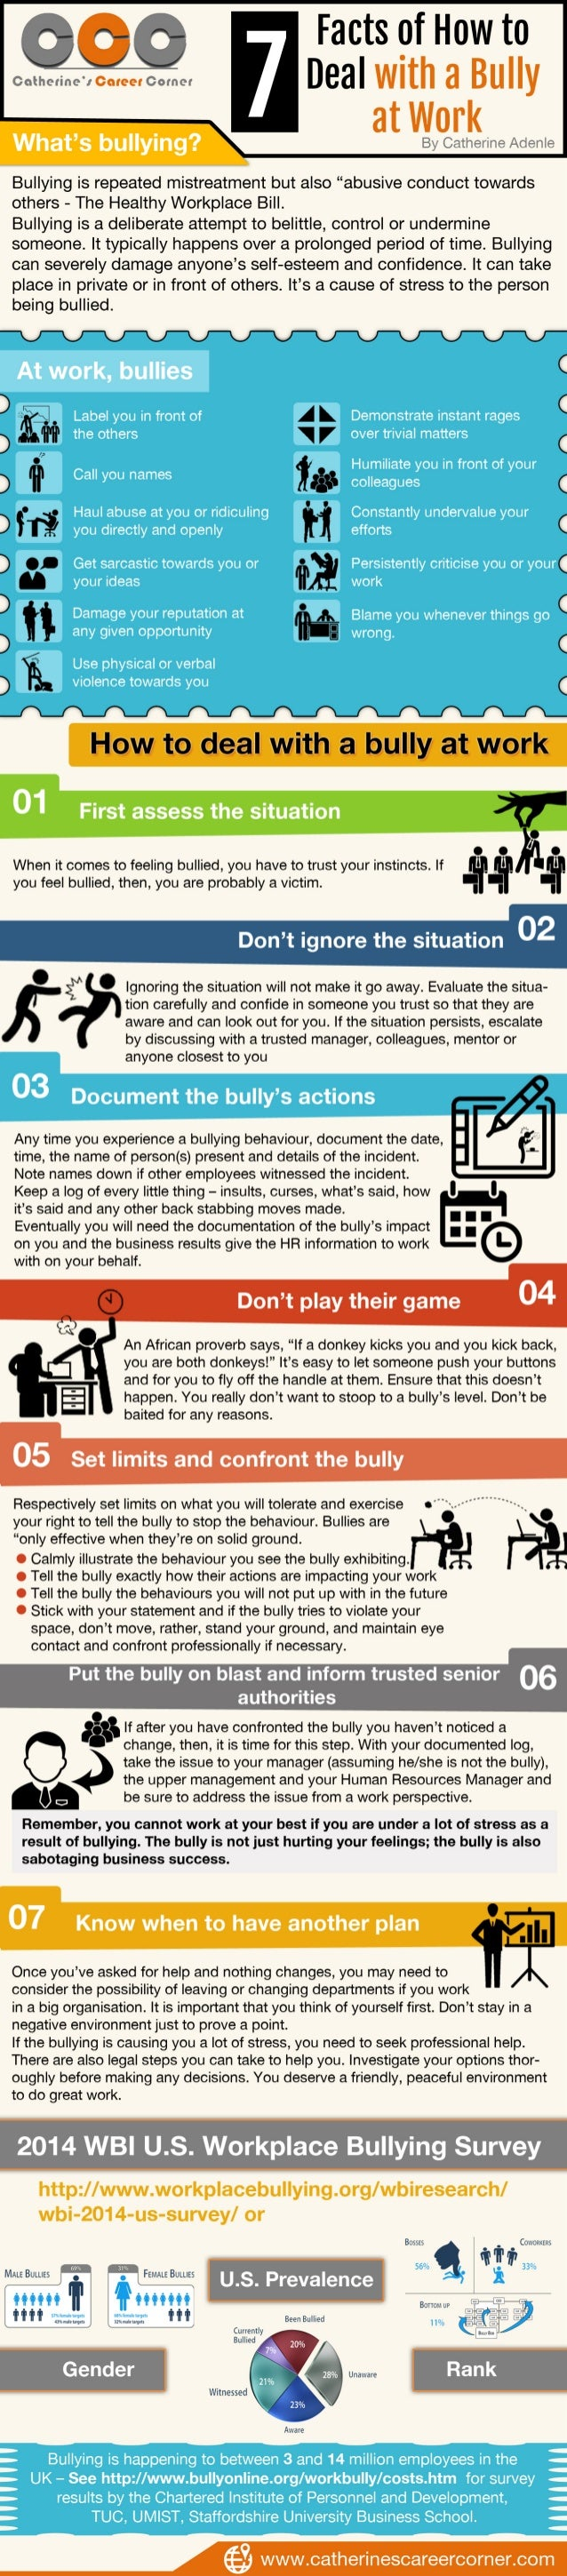 How to Deal with a Bully at Work - Infographic